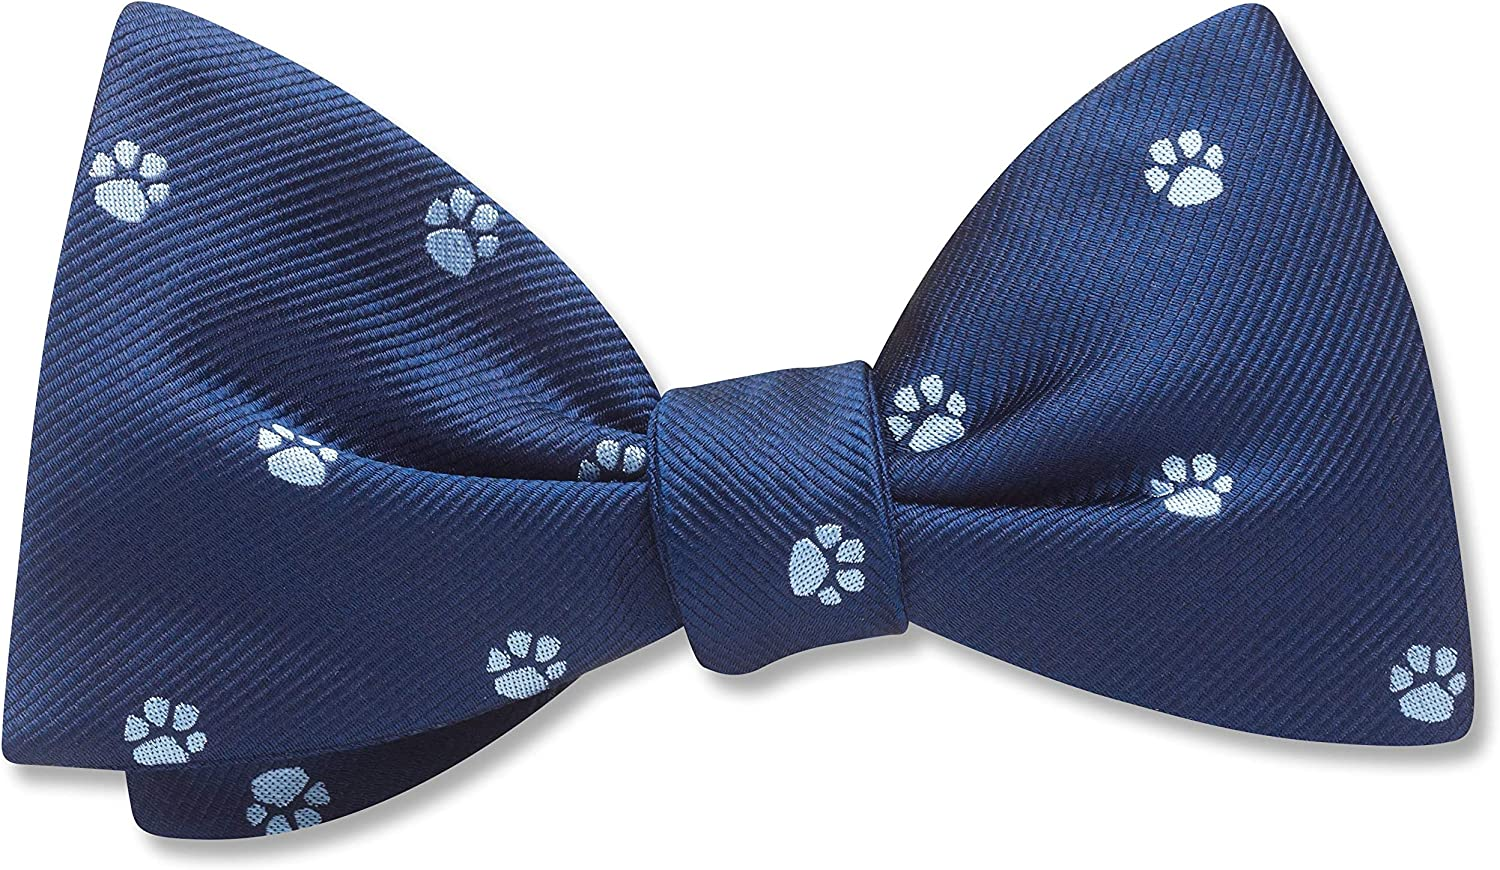 Afoot Blue Conversational, Men's Bow Tie, Handmade in the USA